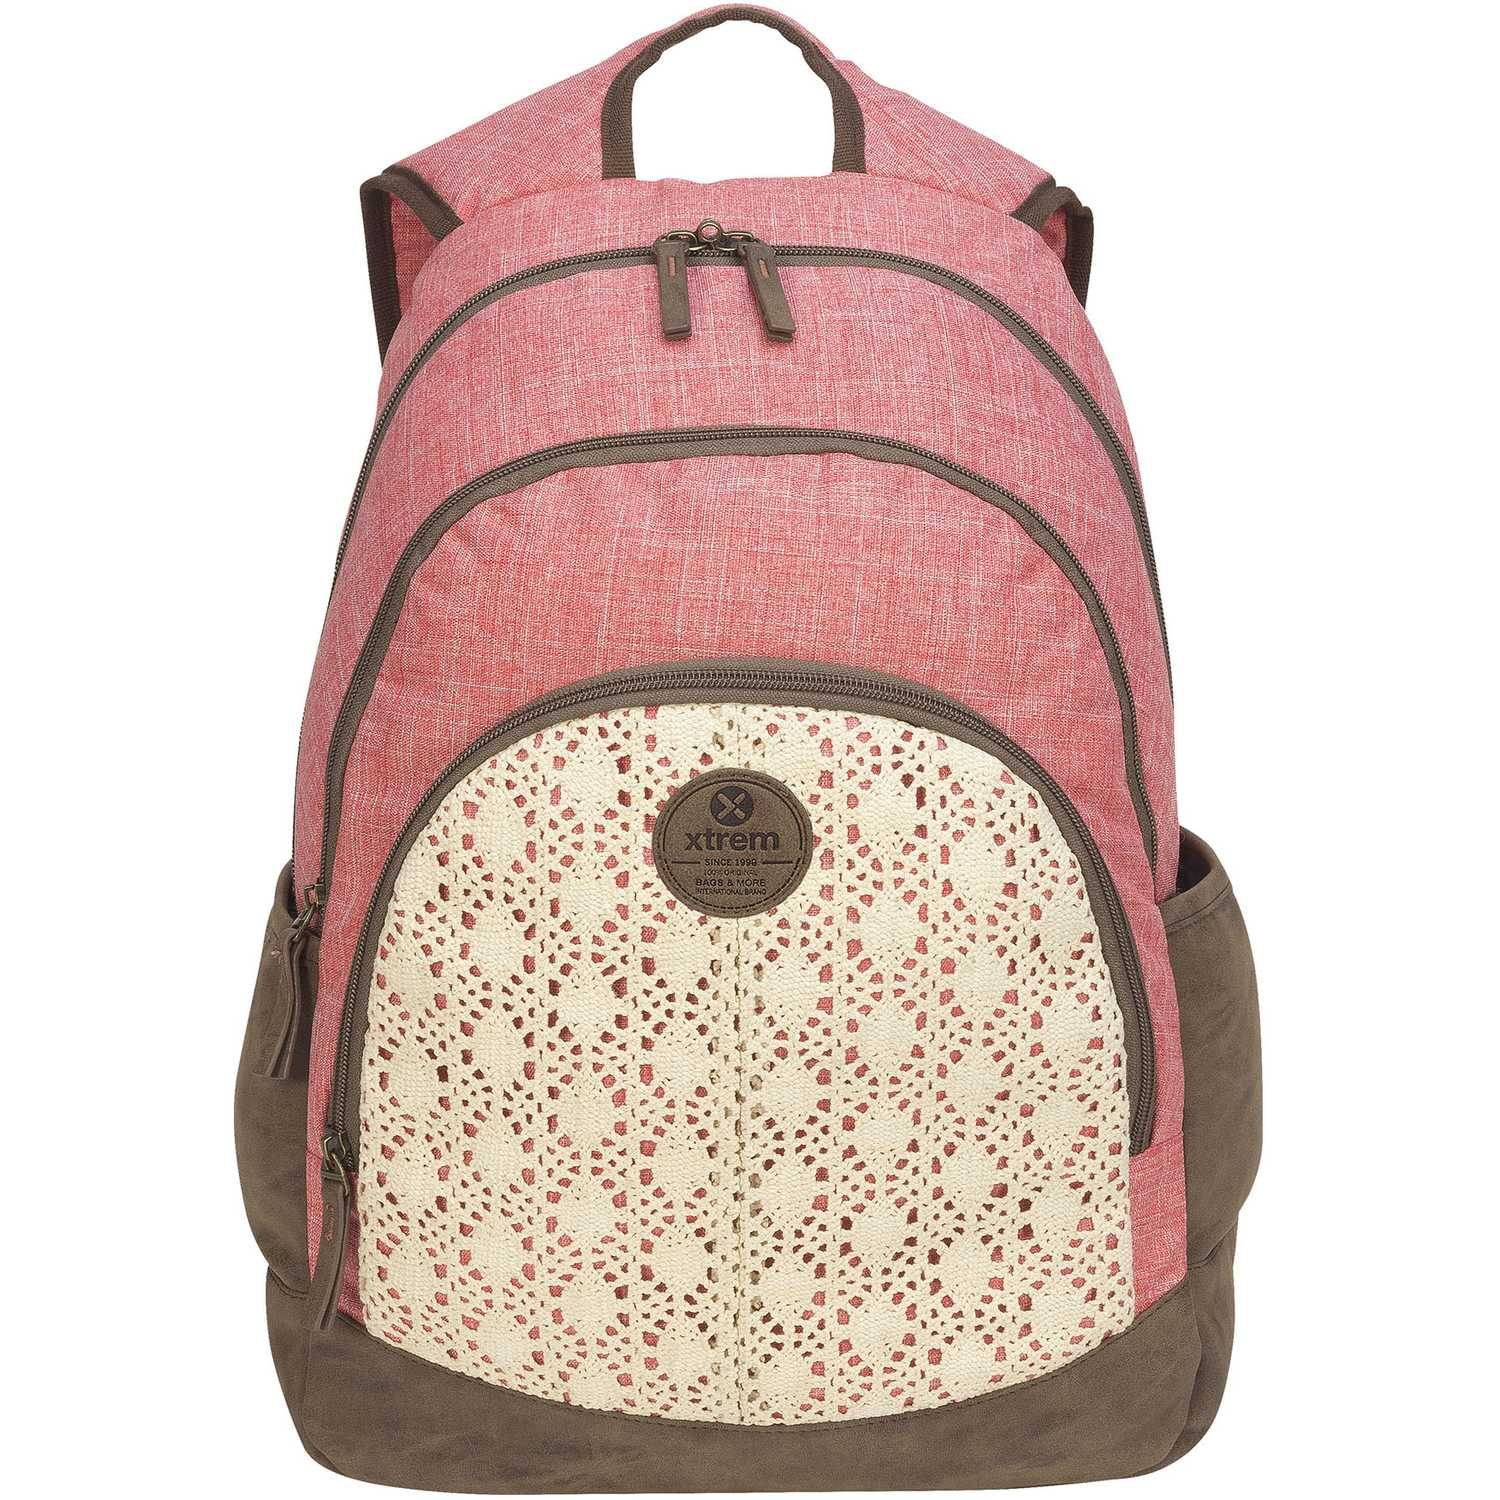 Xtrem backpack crochet love victory 814 Coral mochilas